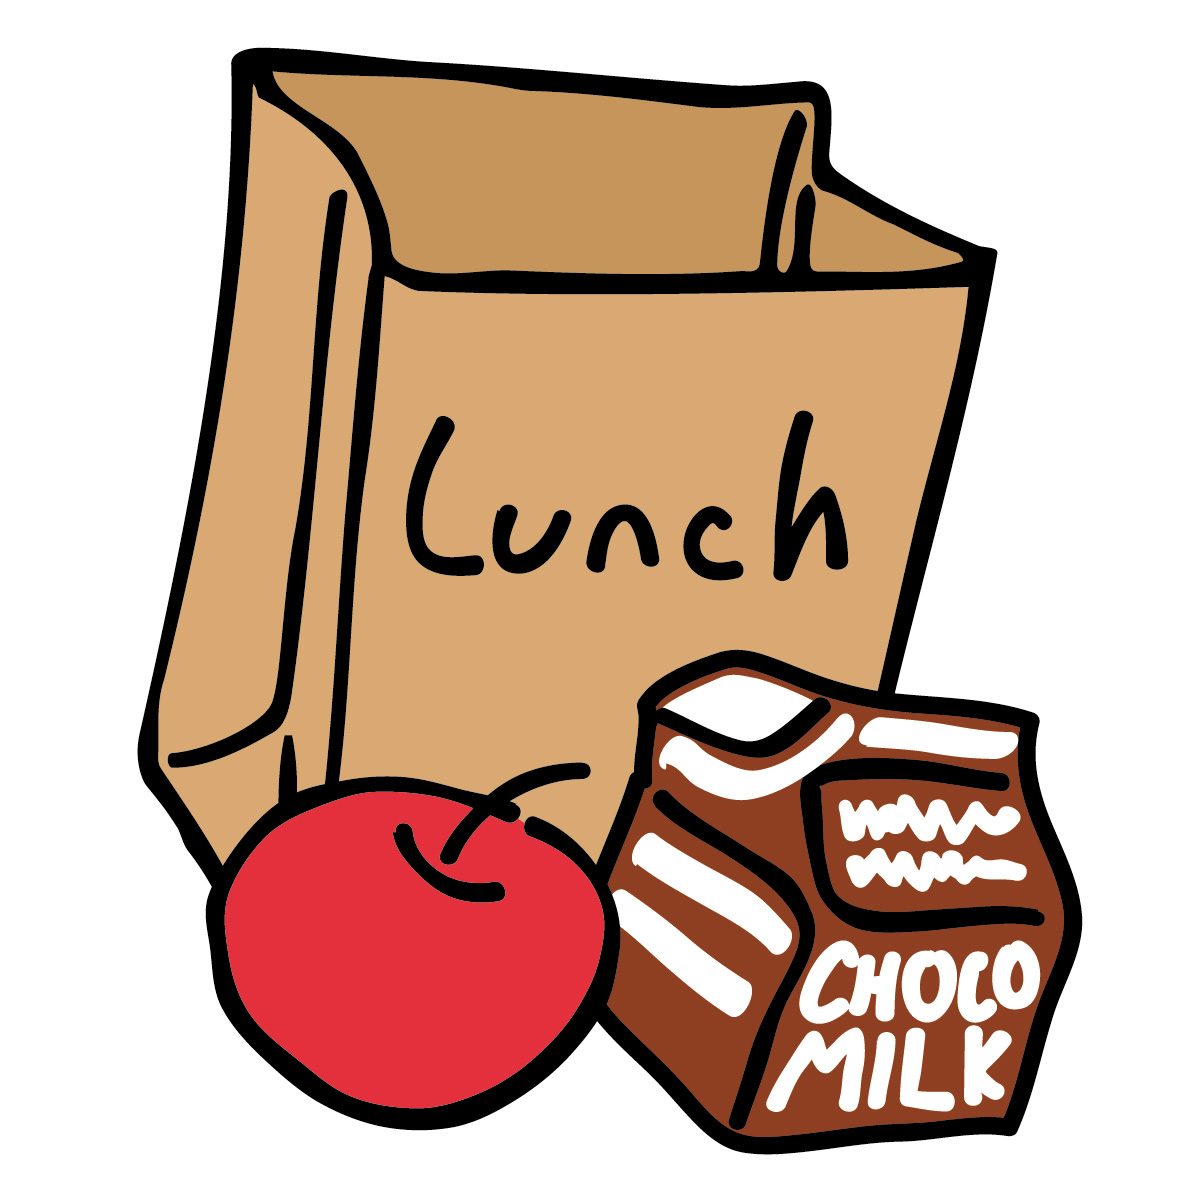 1200x1200 20 School Lunch Clipart. Clipart Panda